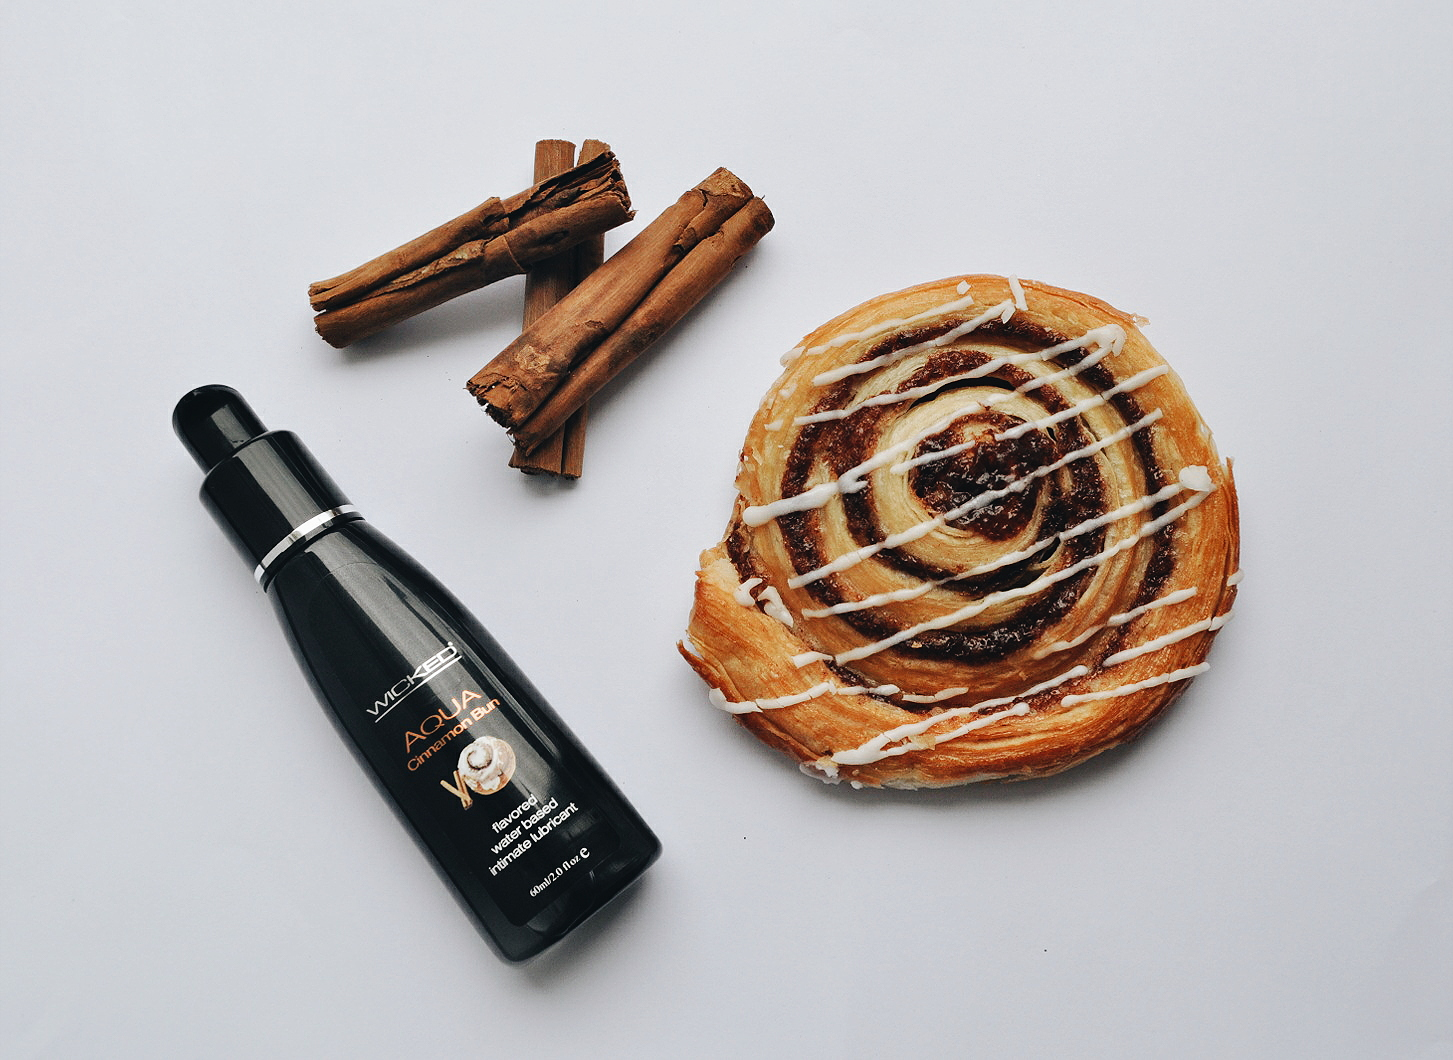 Wicked Aqua Cinnamon Bun Flavored Lubricant Review